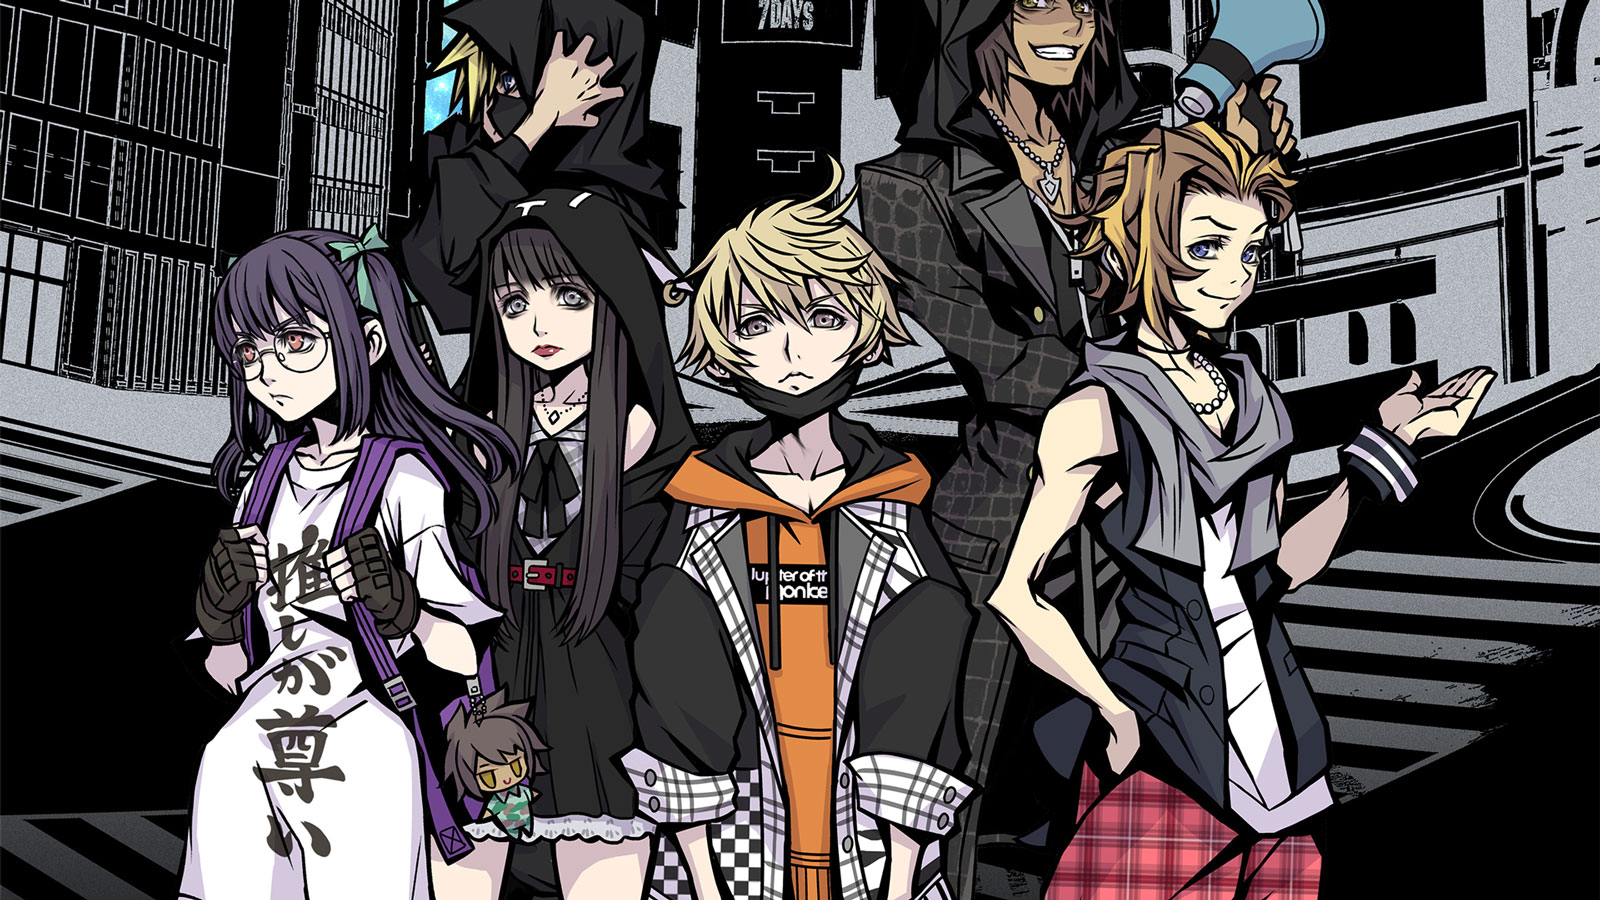 Free NEO: The World Ends with You Wallpaper in 1600x900